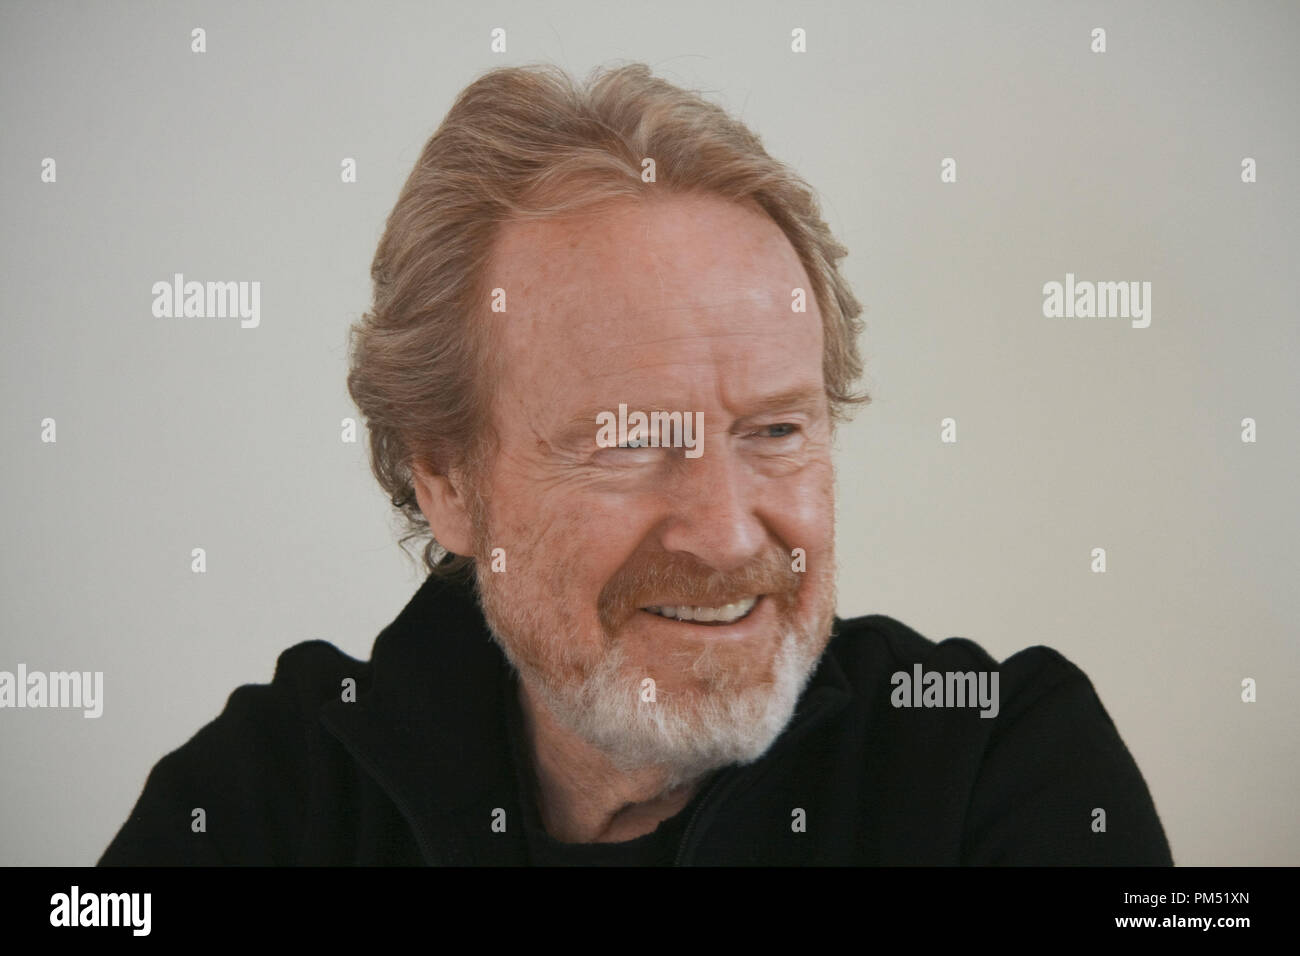 Ridley Scott 'Robin Hood'  Portrait Session, April 23, 2010.  Reproduction by American tabloids is absolutely forbidden. File Reference # 30191_020JRC  For Editorial Use Only -  All Rights Reserved - Stock Image